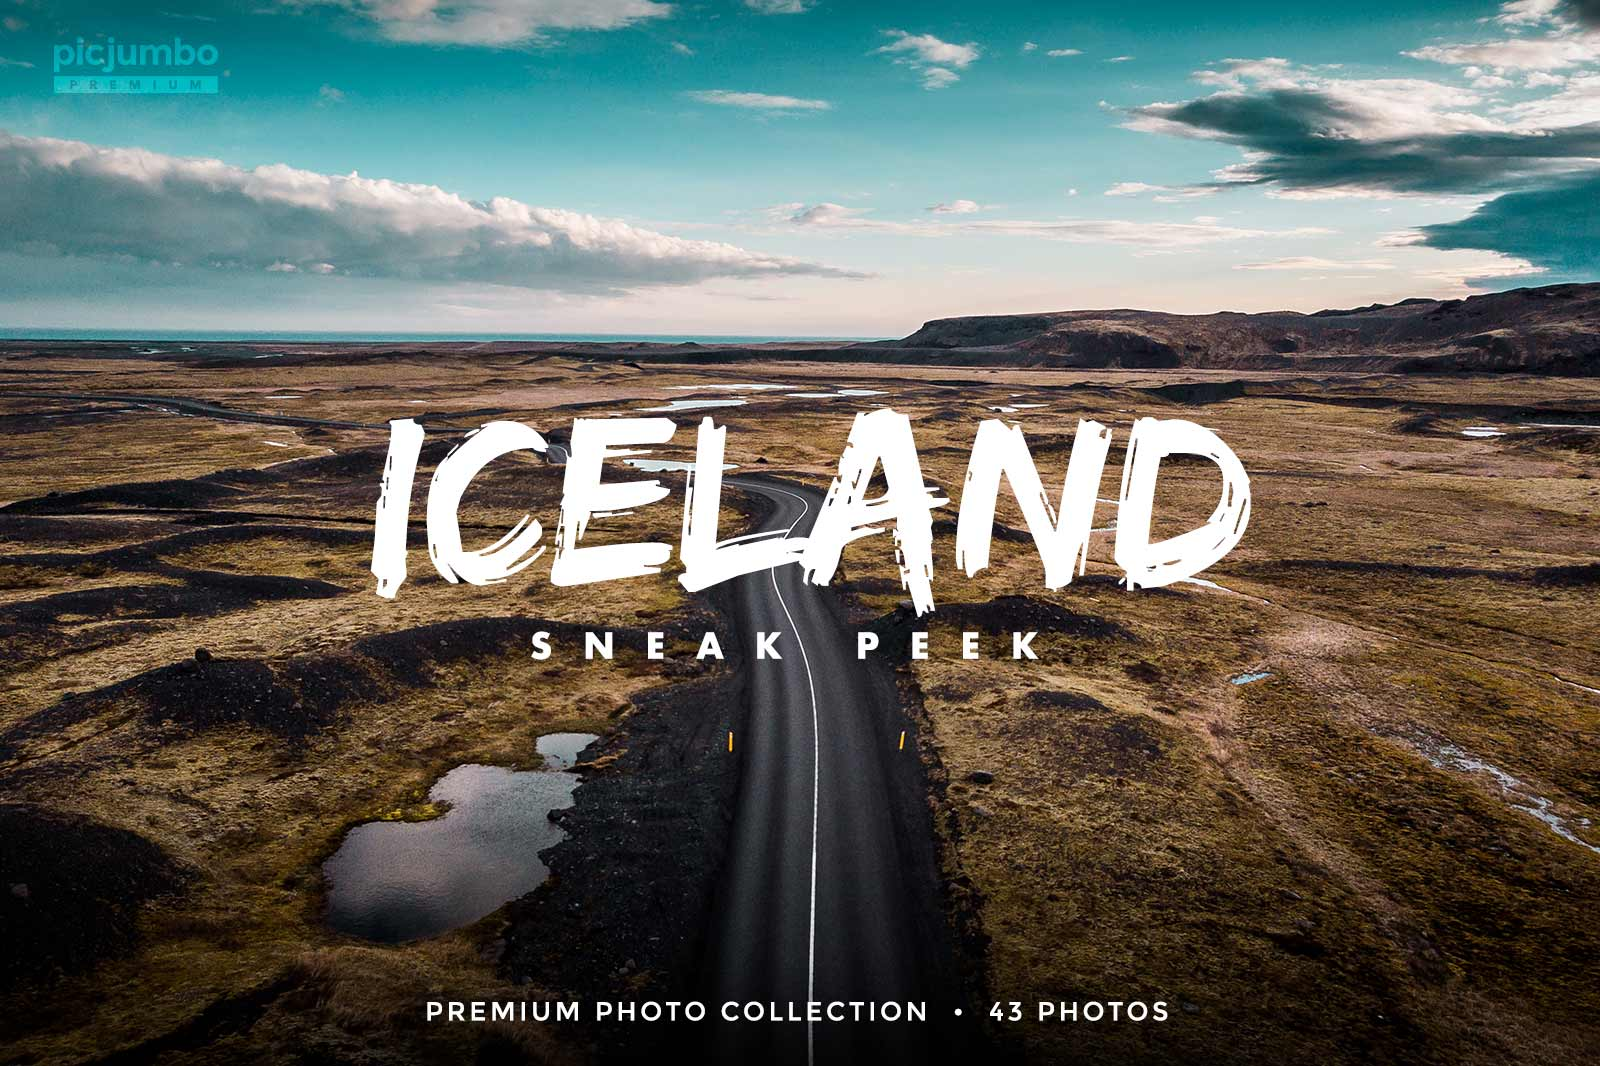 Iceland Sneak Peek stock photo collection